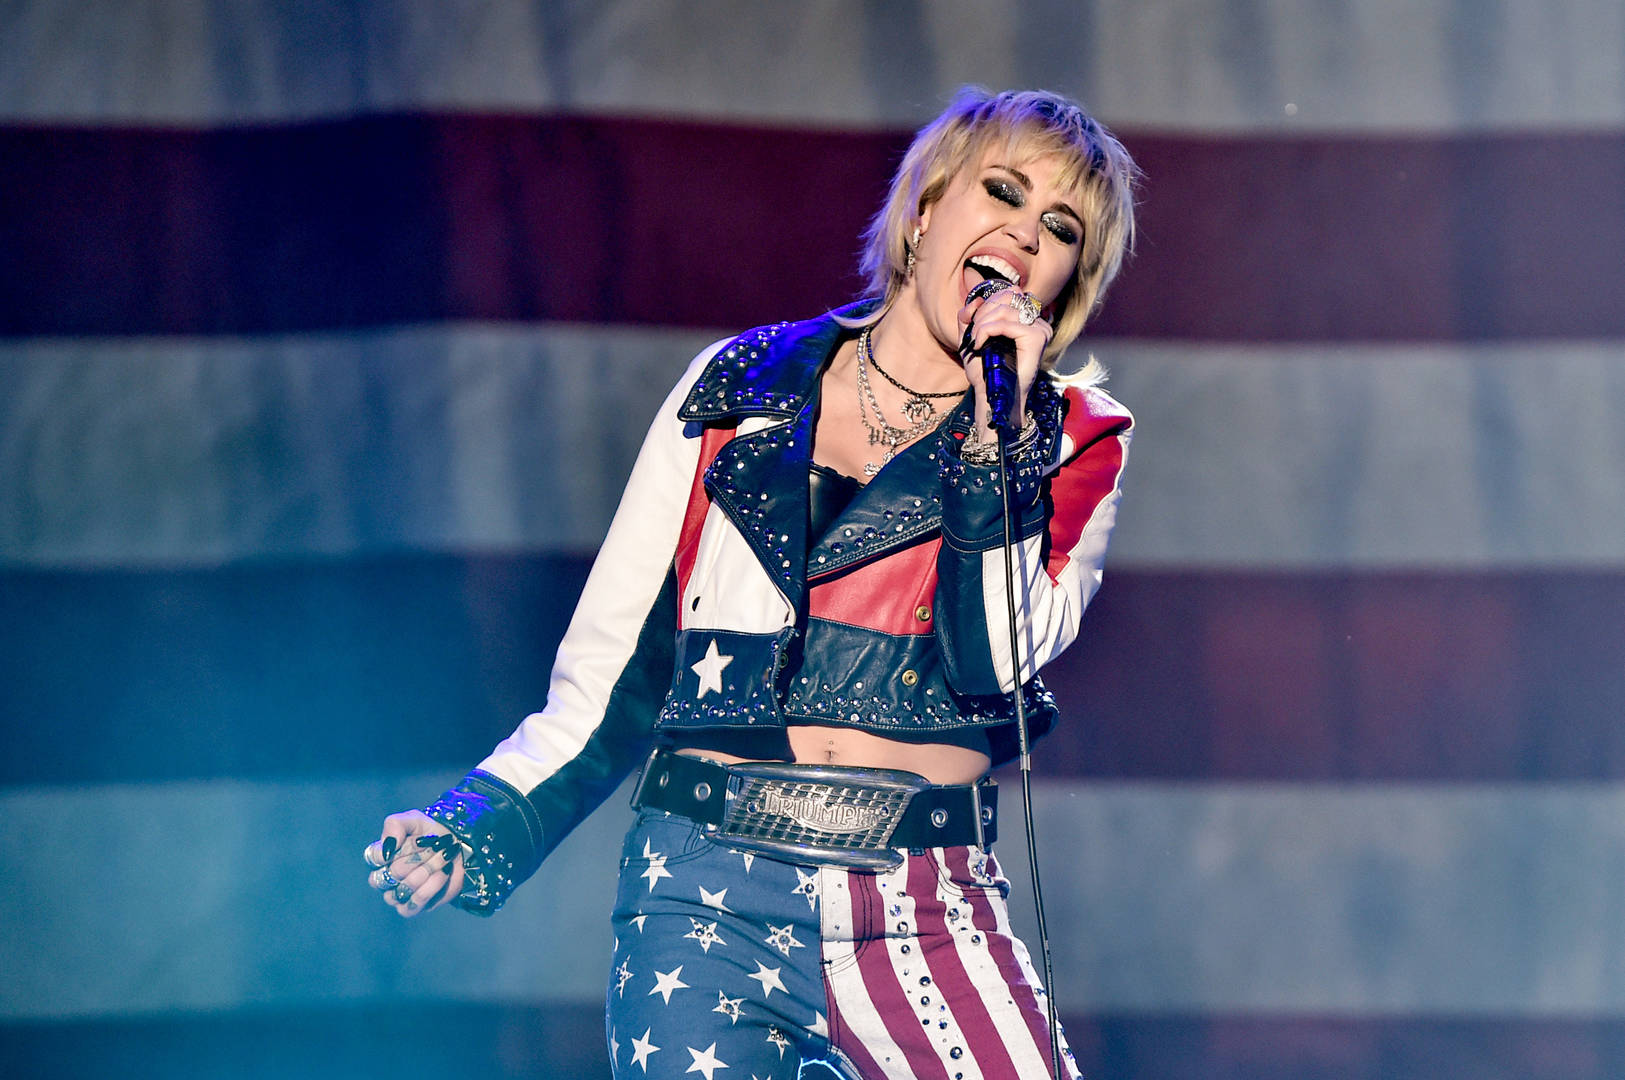 Miley Cyrus joins Super Bowl show